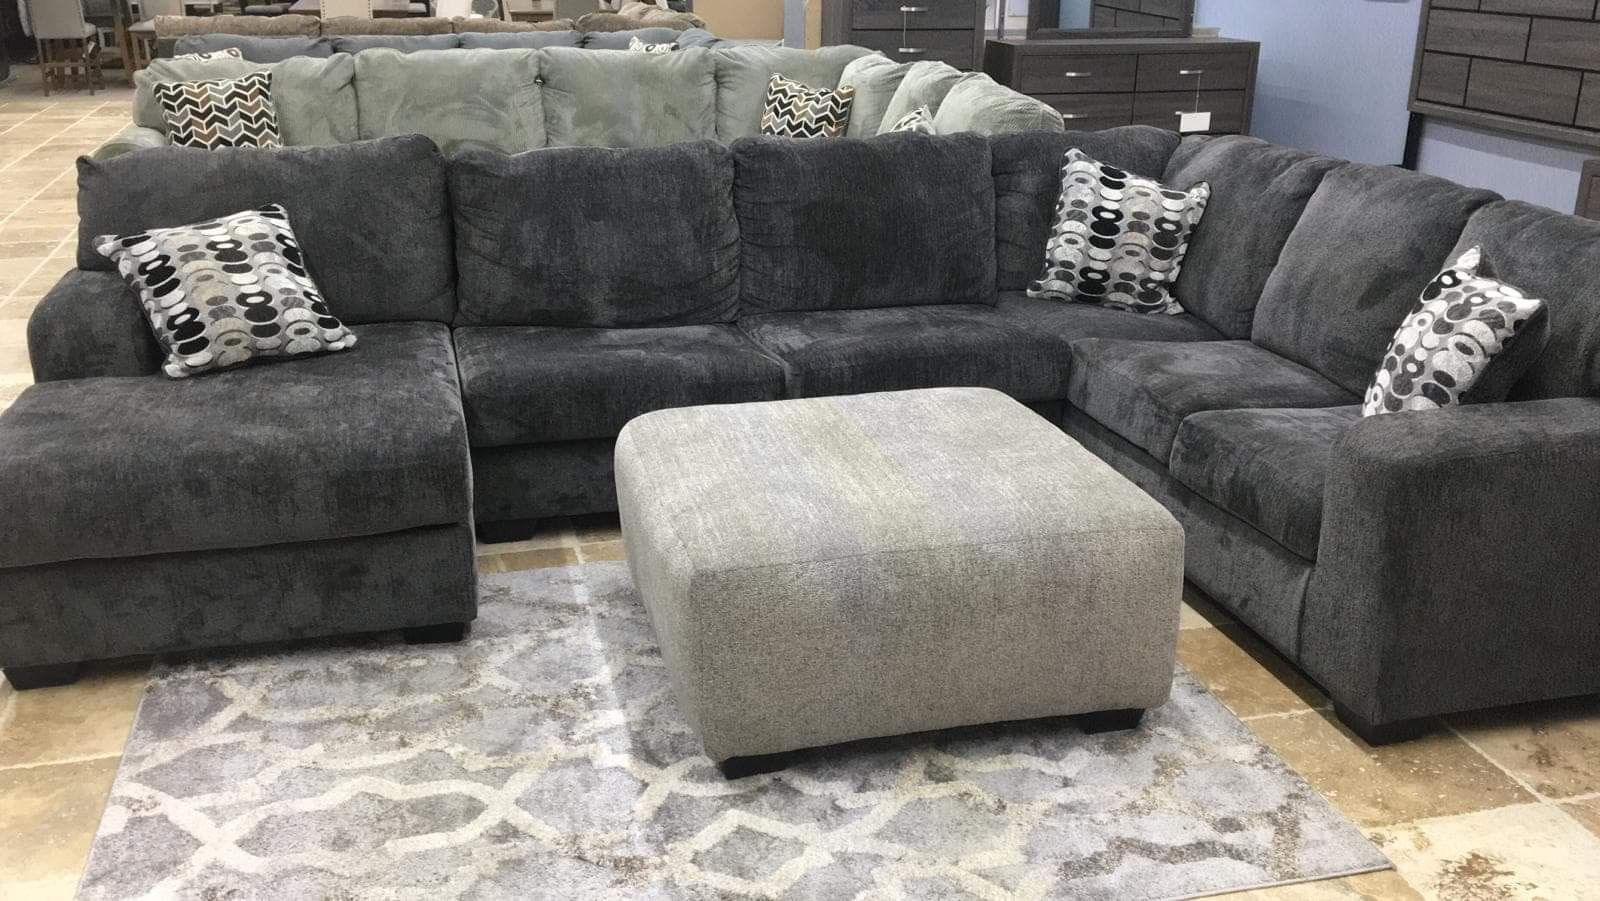 ♡NEW ASHLEY SMOKE LAF/RAF LARGE LIVING ROOM SECTIONAL, COUCH, 39 DOWN PAYMENT, FREE DELIVERY♡